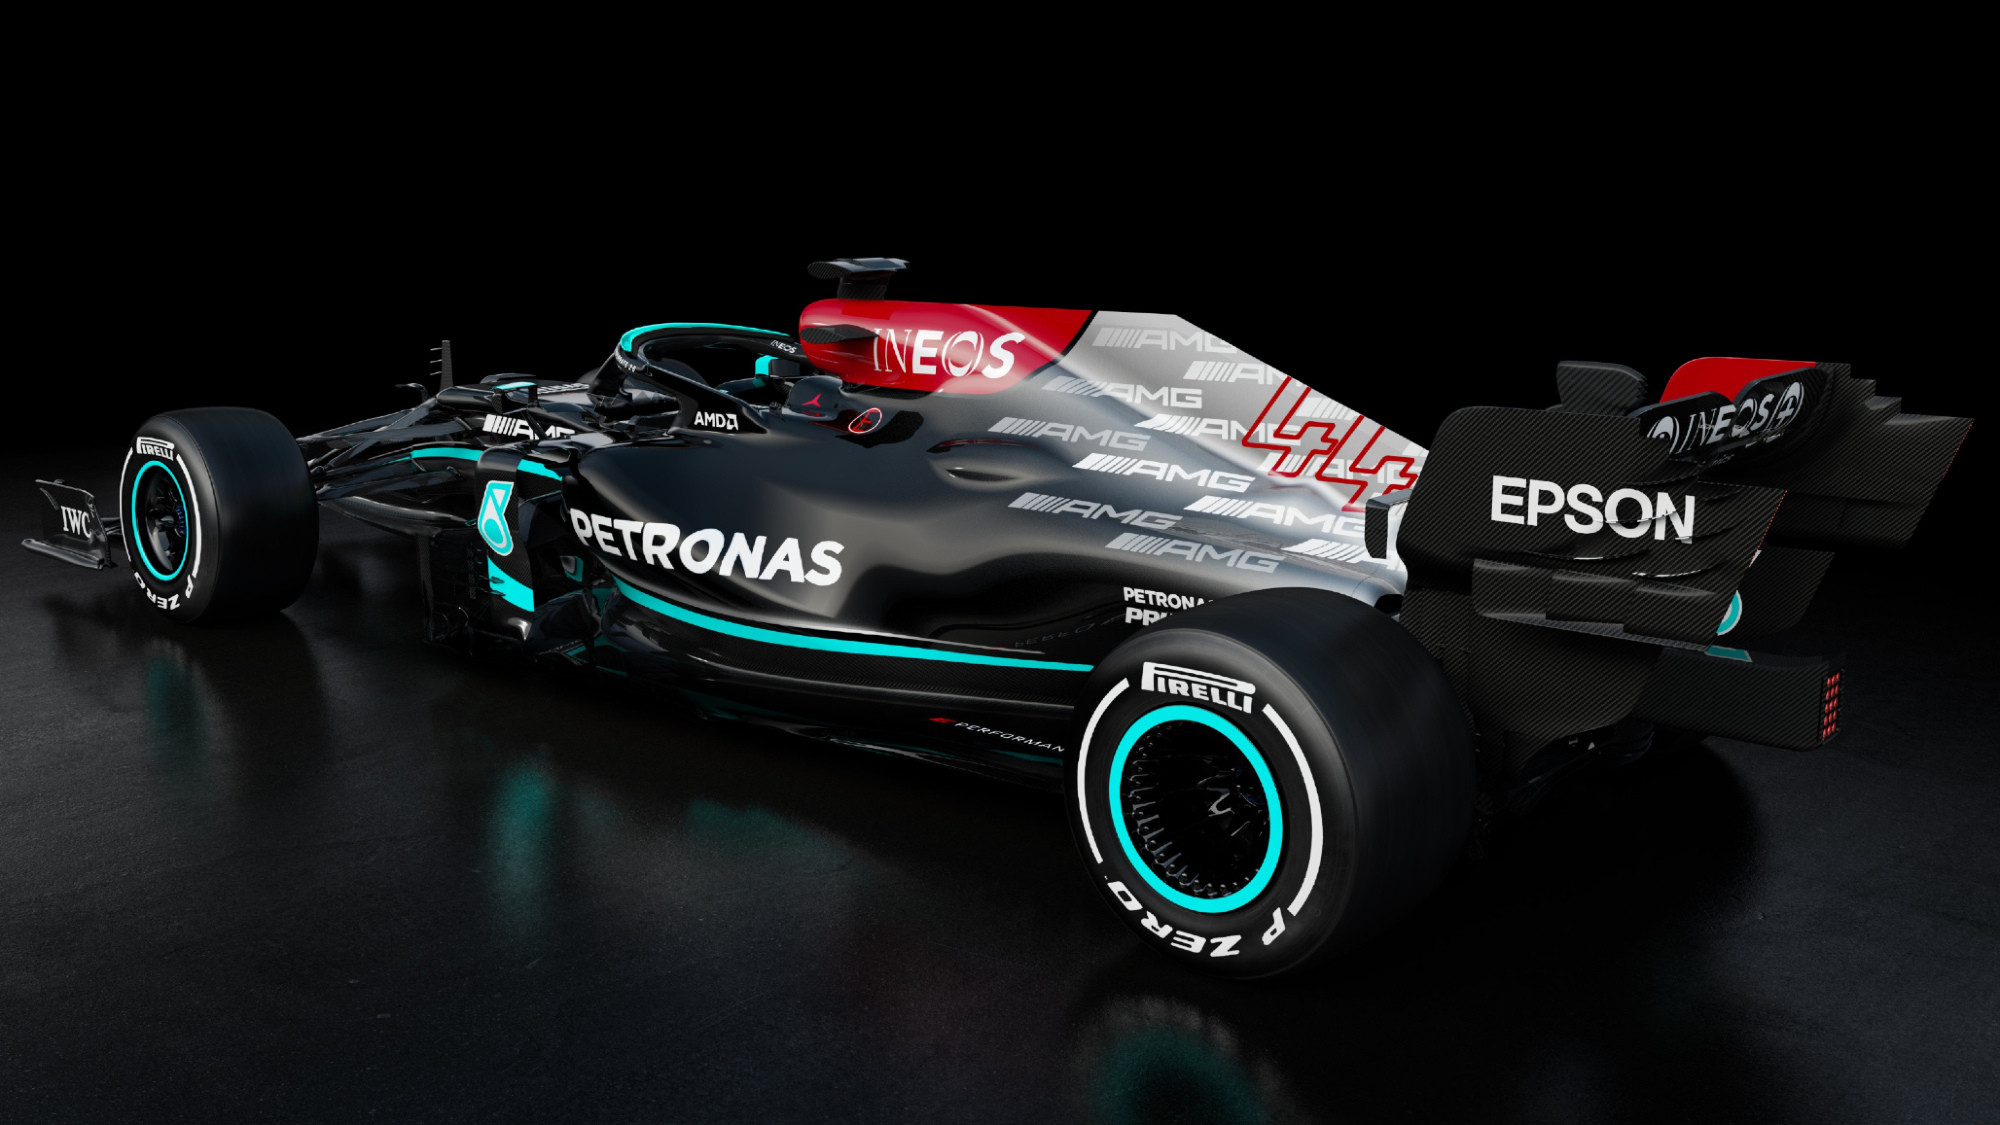 Mercedes has addressed 'Achilles heel' from 2020 with power unit fix